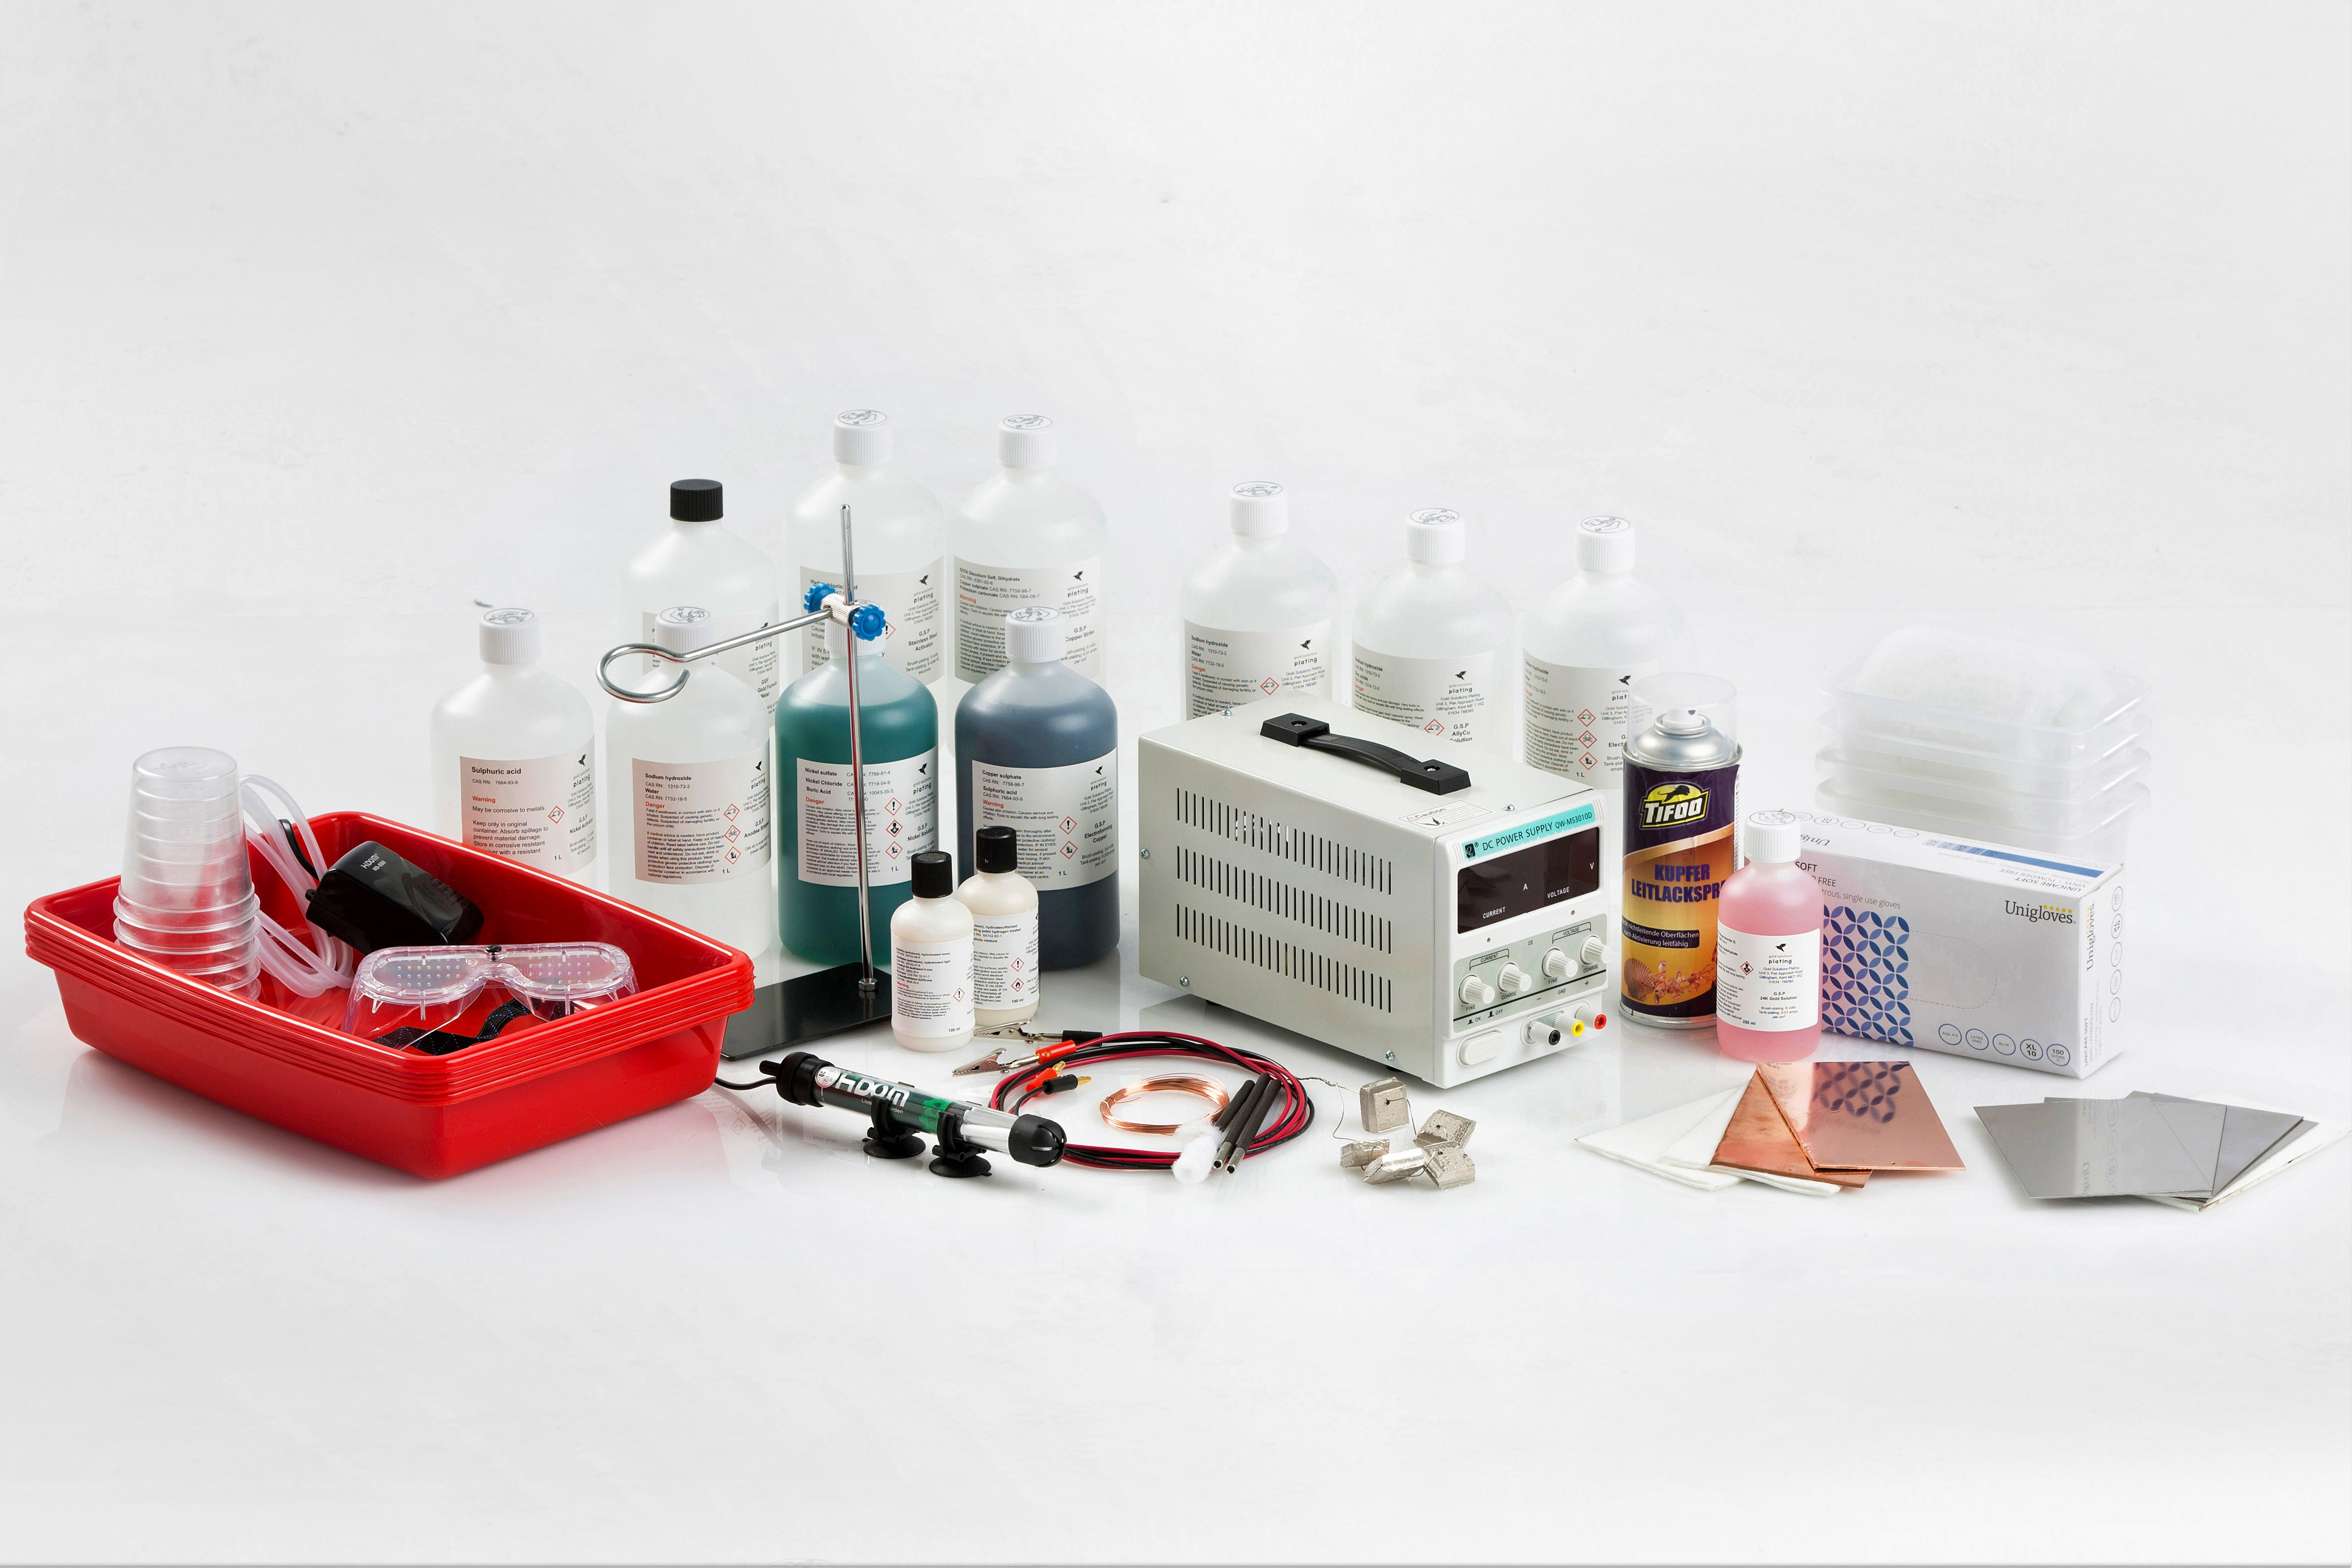 GSP Prodigy 1.0 Electroforming / Electroplating Kit Contents